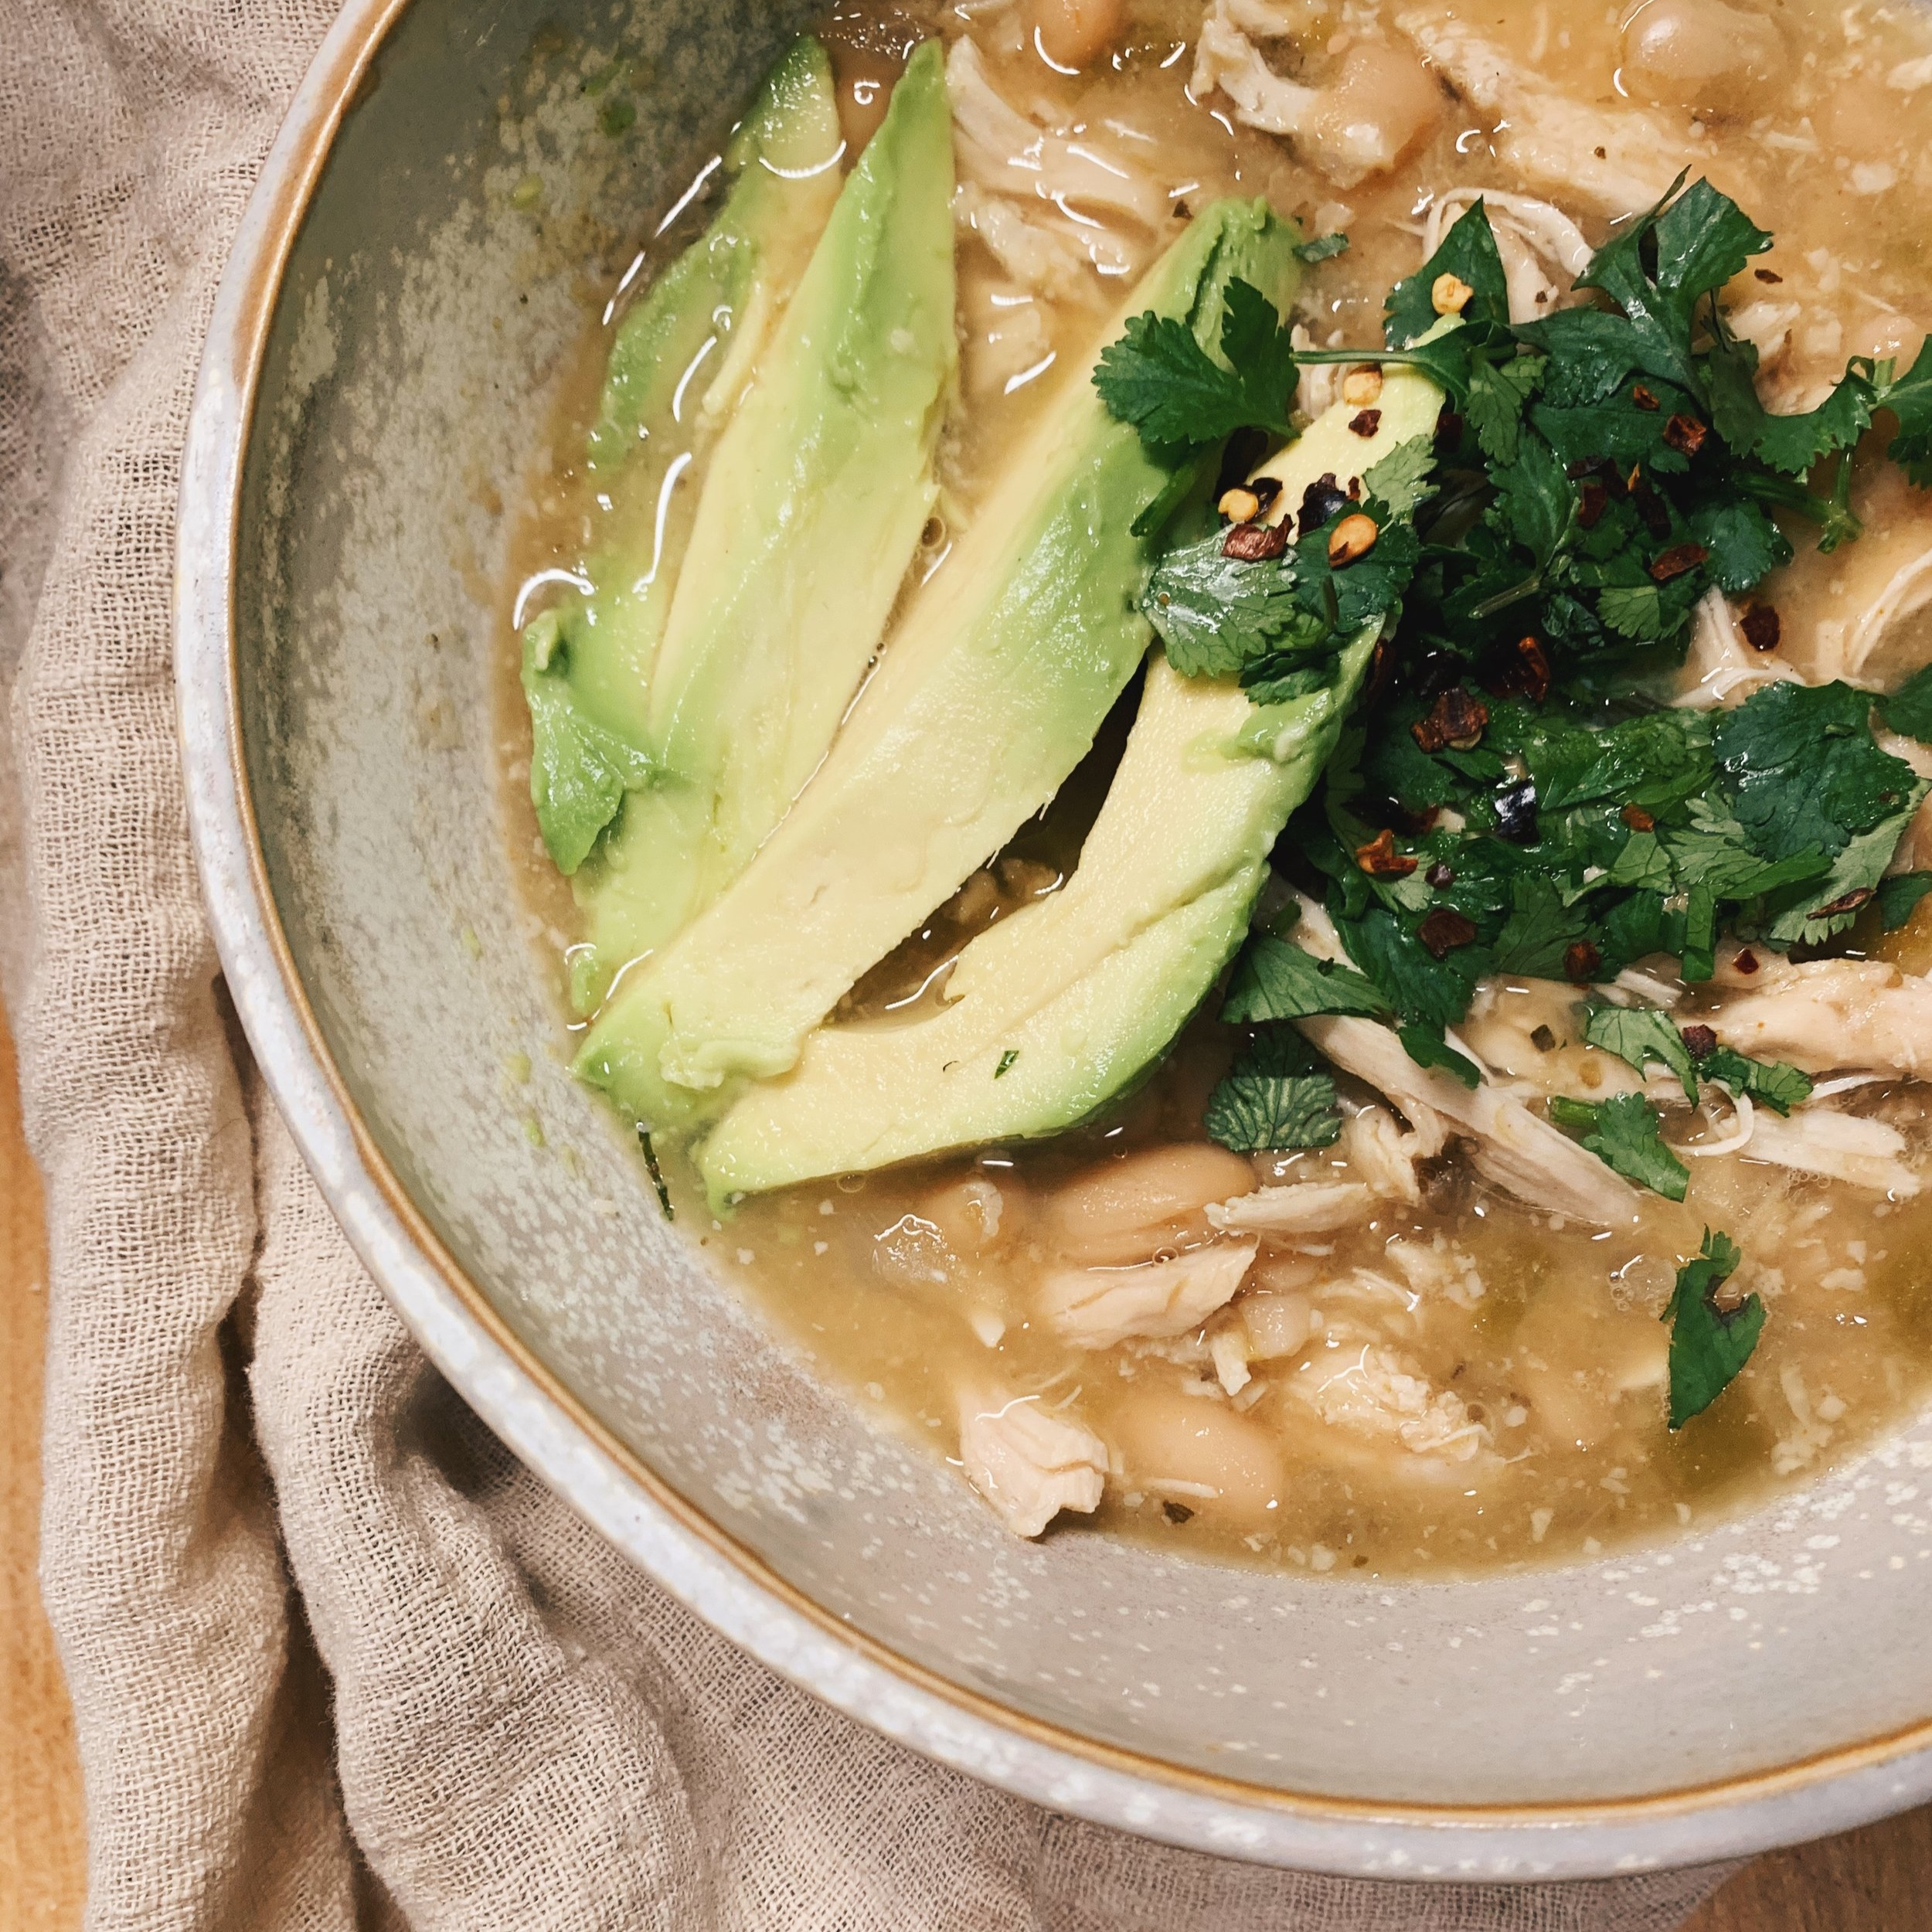 Crock Pot Green Chile Chicken   One of the EASIEST recipes to prepare! Little prep time and a short cook time well!  A yummy mix of Green Chile, garlic, cumin and topped with cilantro and avocado, duh!! Enjoy!  Minor adjustments: 3 cups of broth instead of 4, blended 1/3 (ish) for more thickness!   Recipe    here!